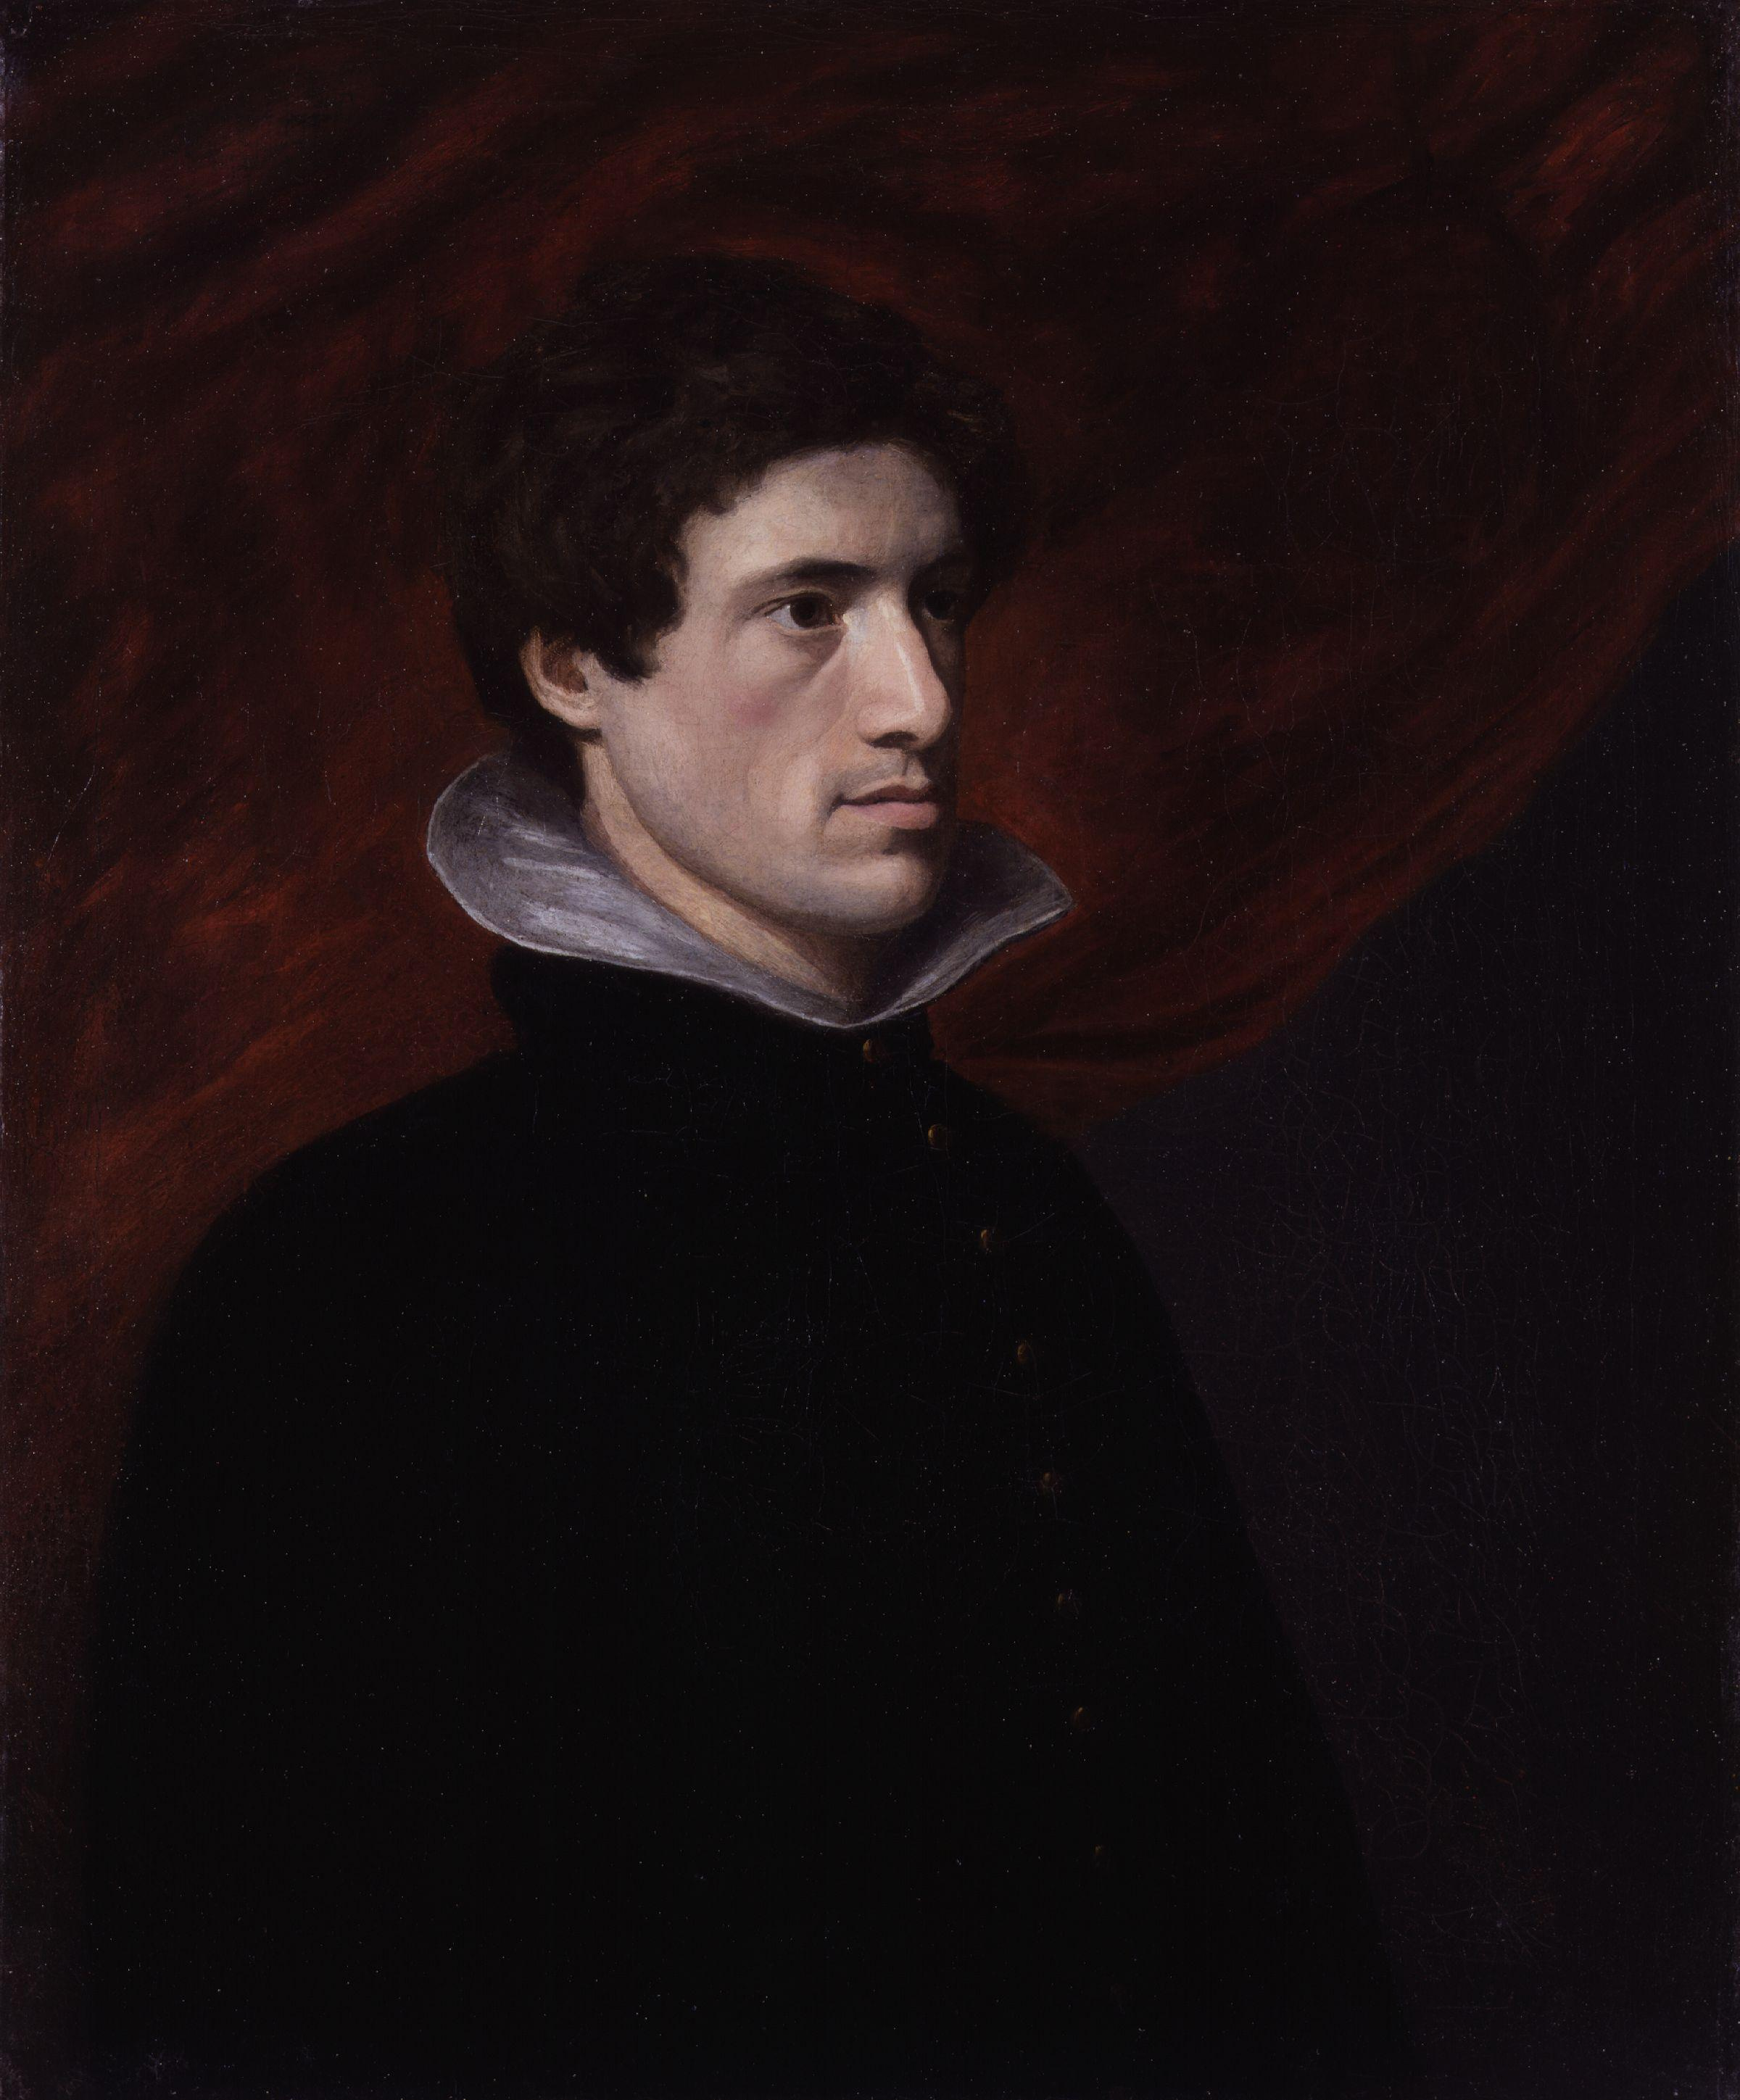 file charles lamb by william hazlitt jpg  file charles lamb by william hazlitt jpg